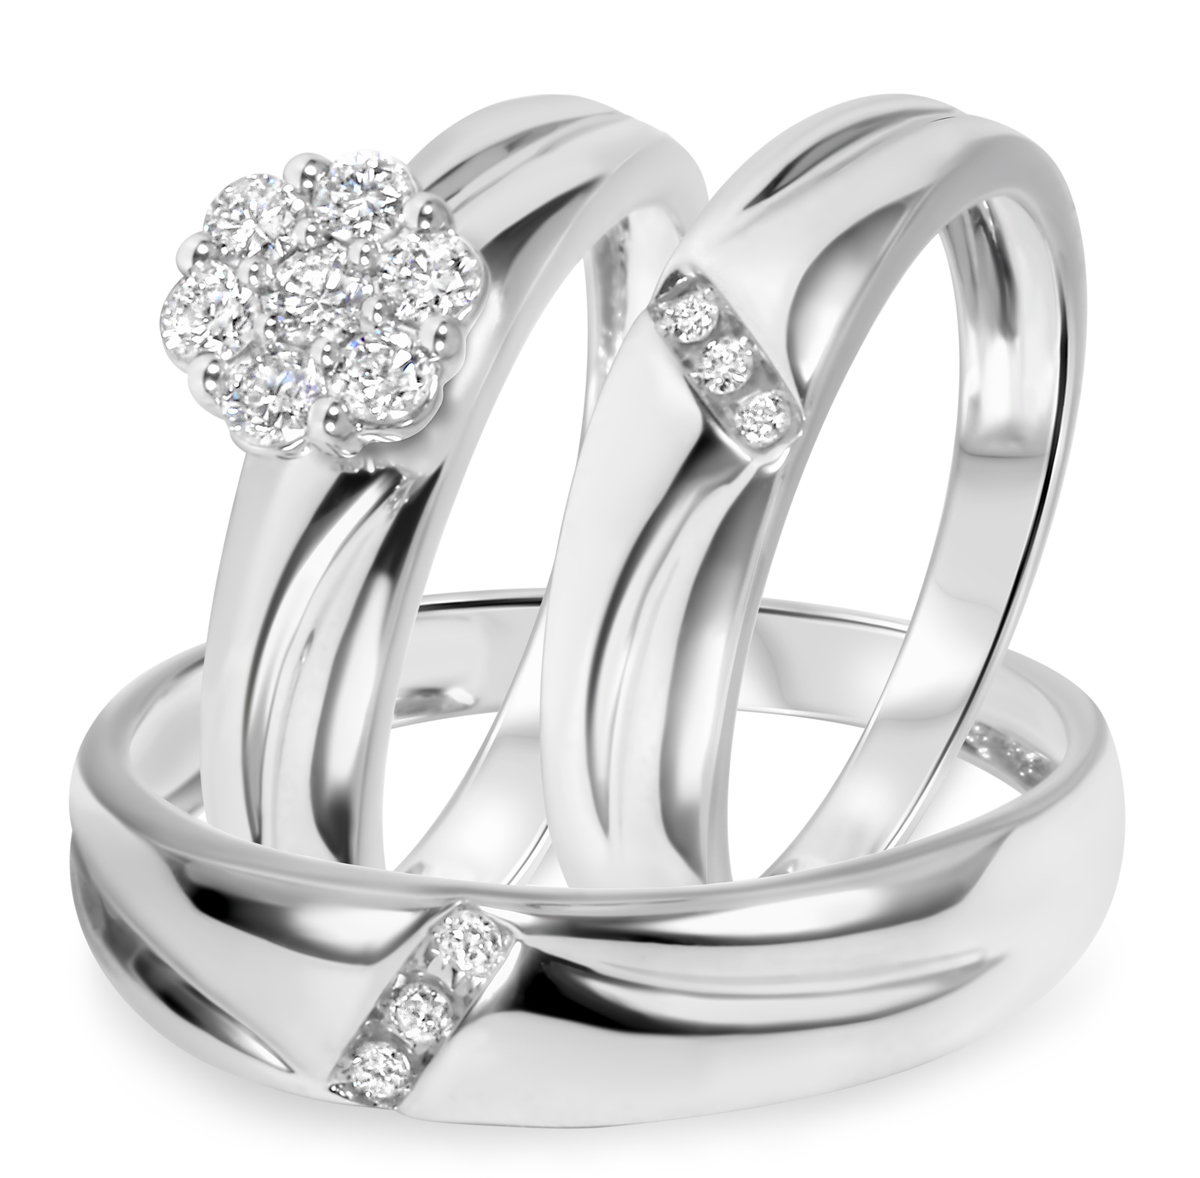 1 2 ct tw diamond trio matching wedding ring set 14k With matching trio wedding rings